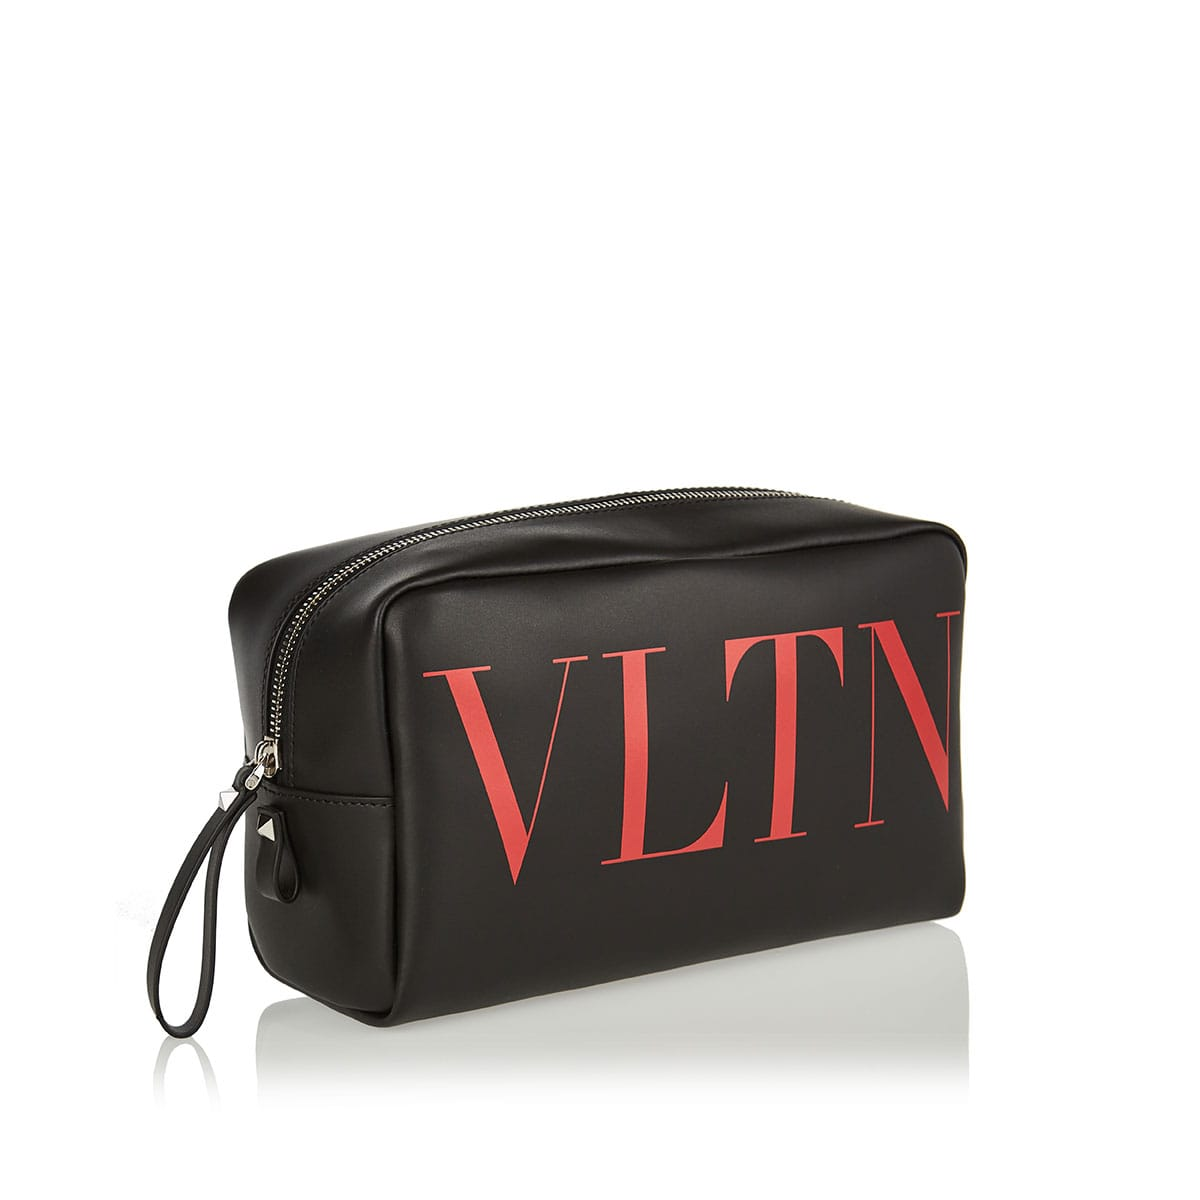 VLTN leather wash bag